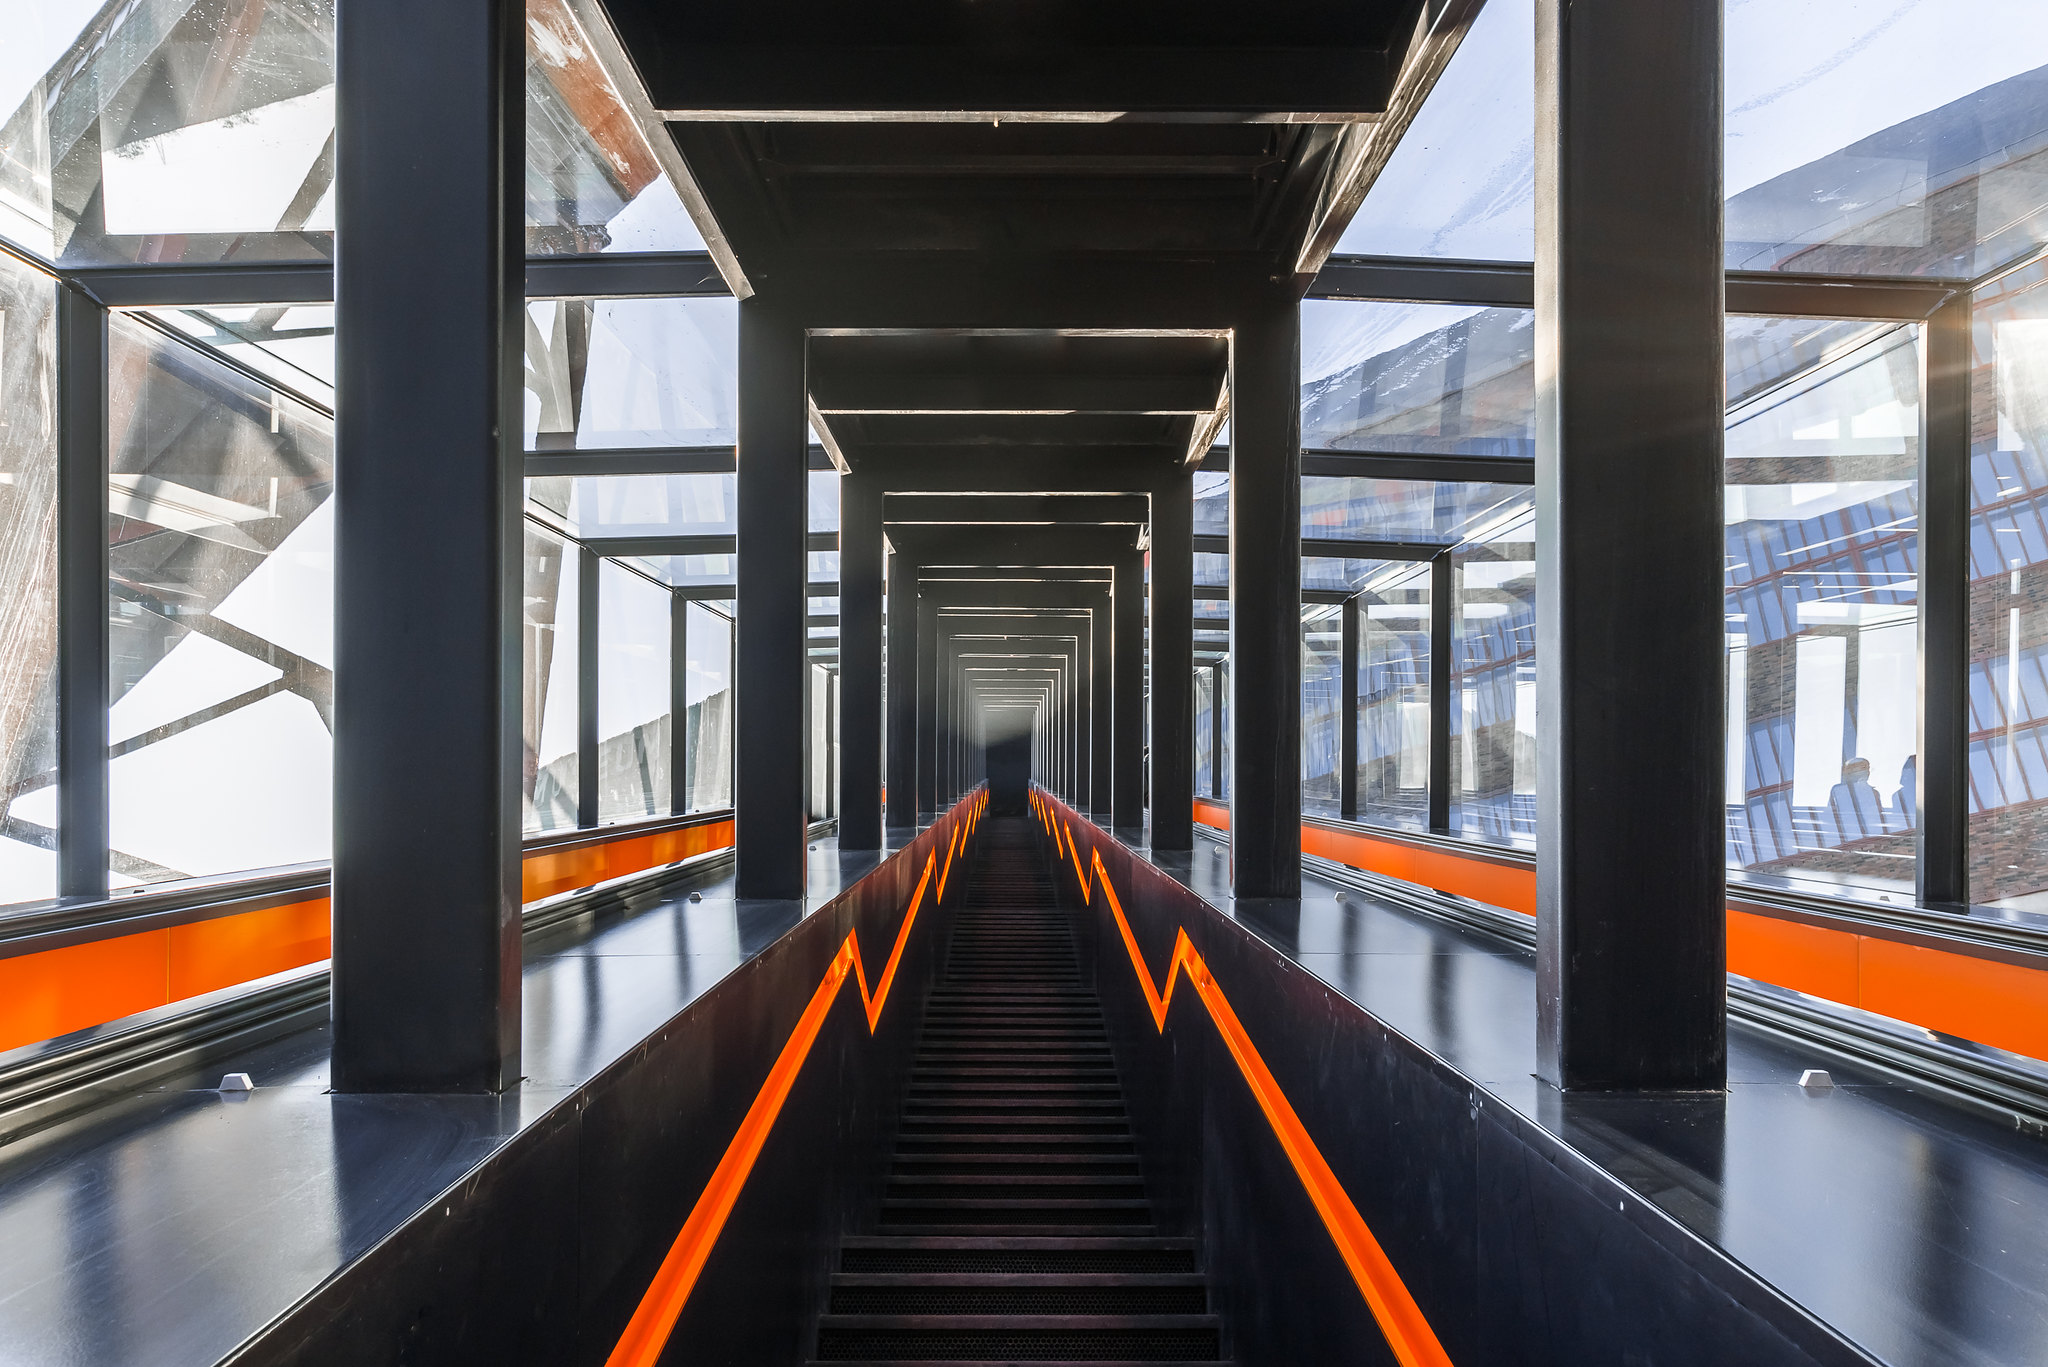 Largest freestanding escalator in Germany